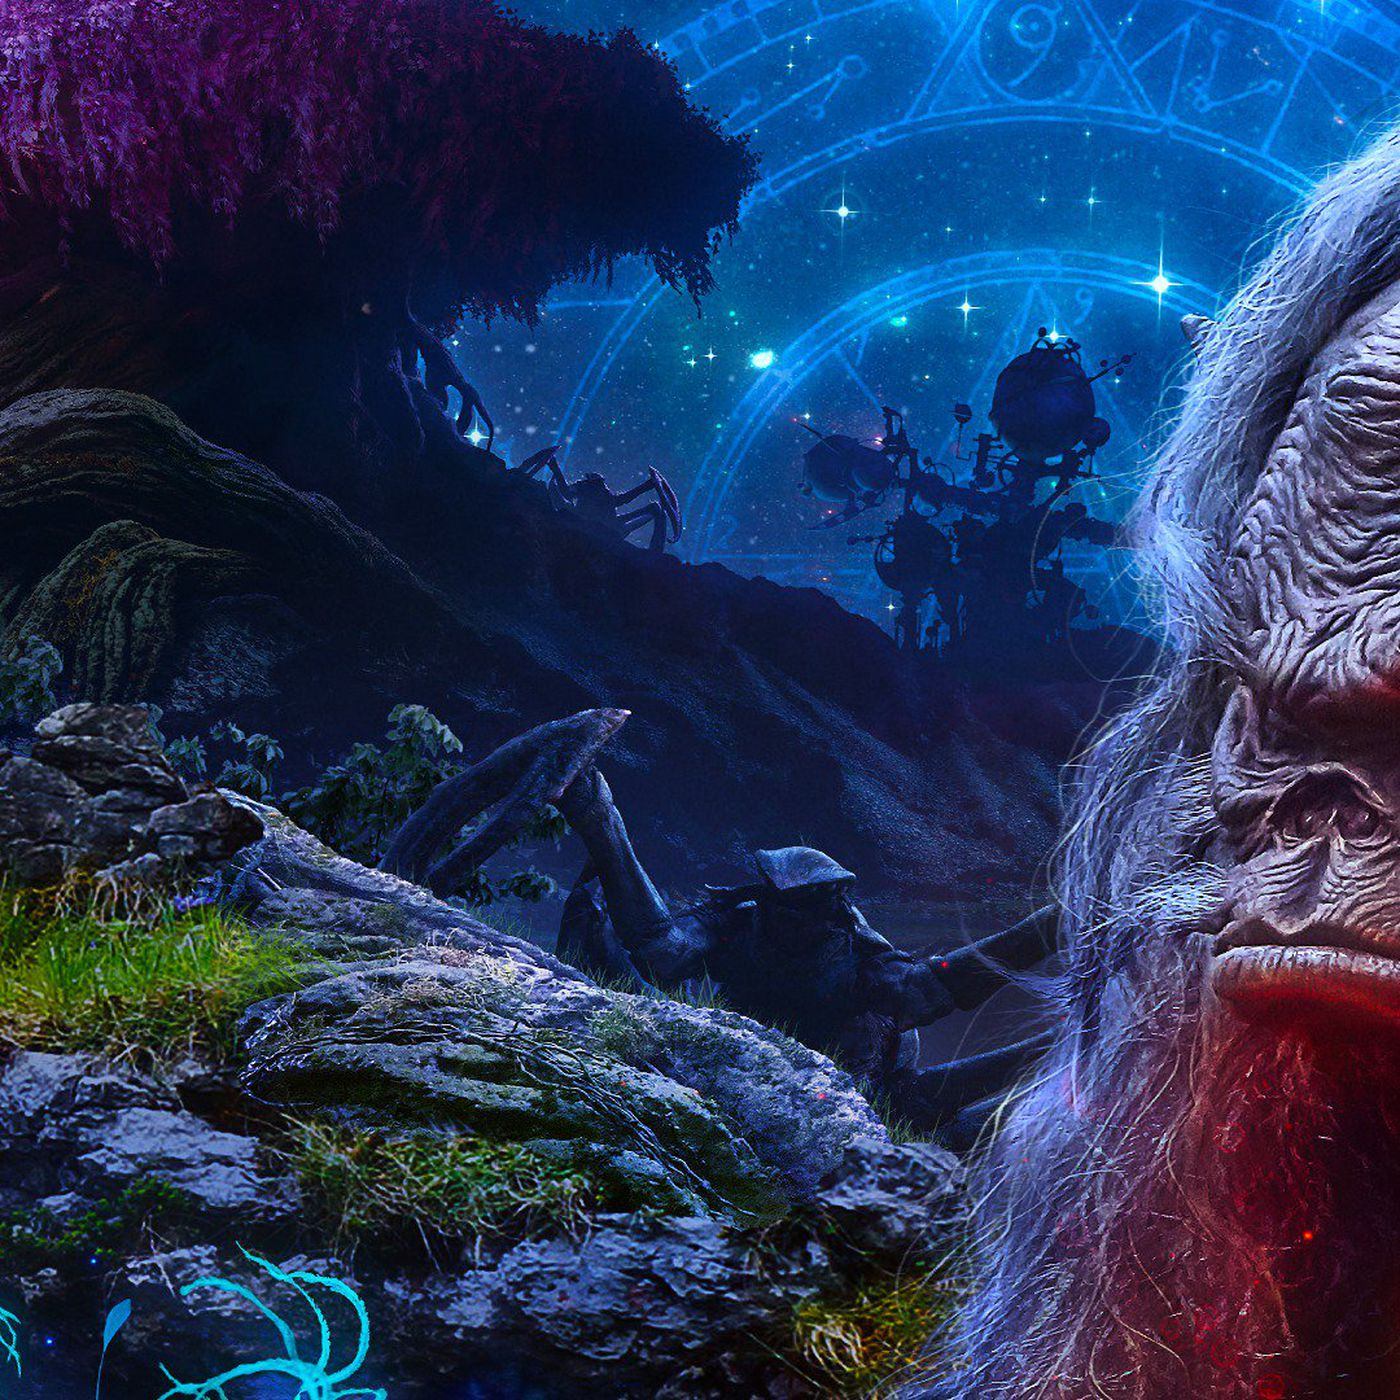 Netflix S The Dark Crystal Why The Skeksis Act Like They Re Good Guys Polygon After losing control of thra in a tumultuous conflict with the skeksis — the other half that spawned from the urskeks as they were struck by the. netflix s the dark crystal why the